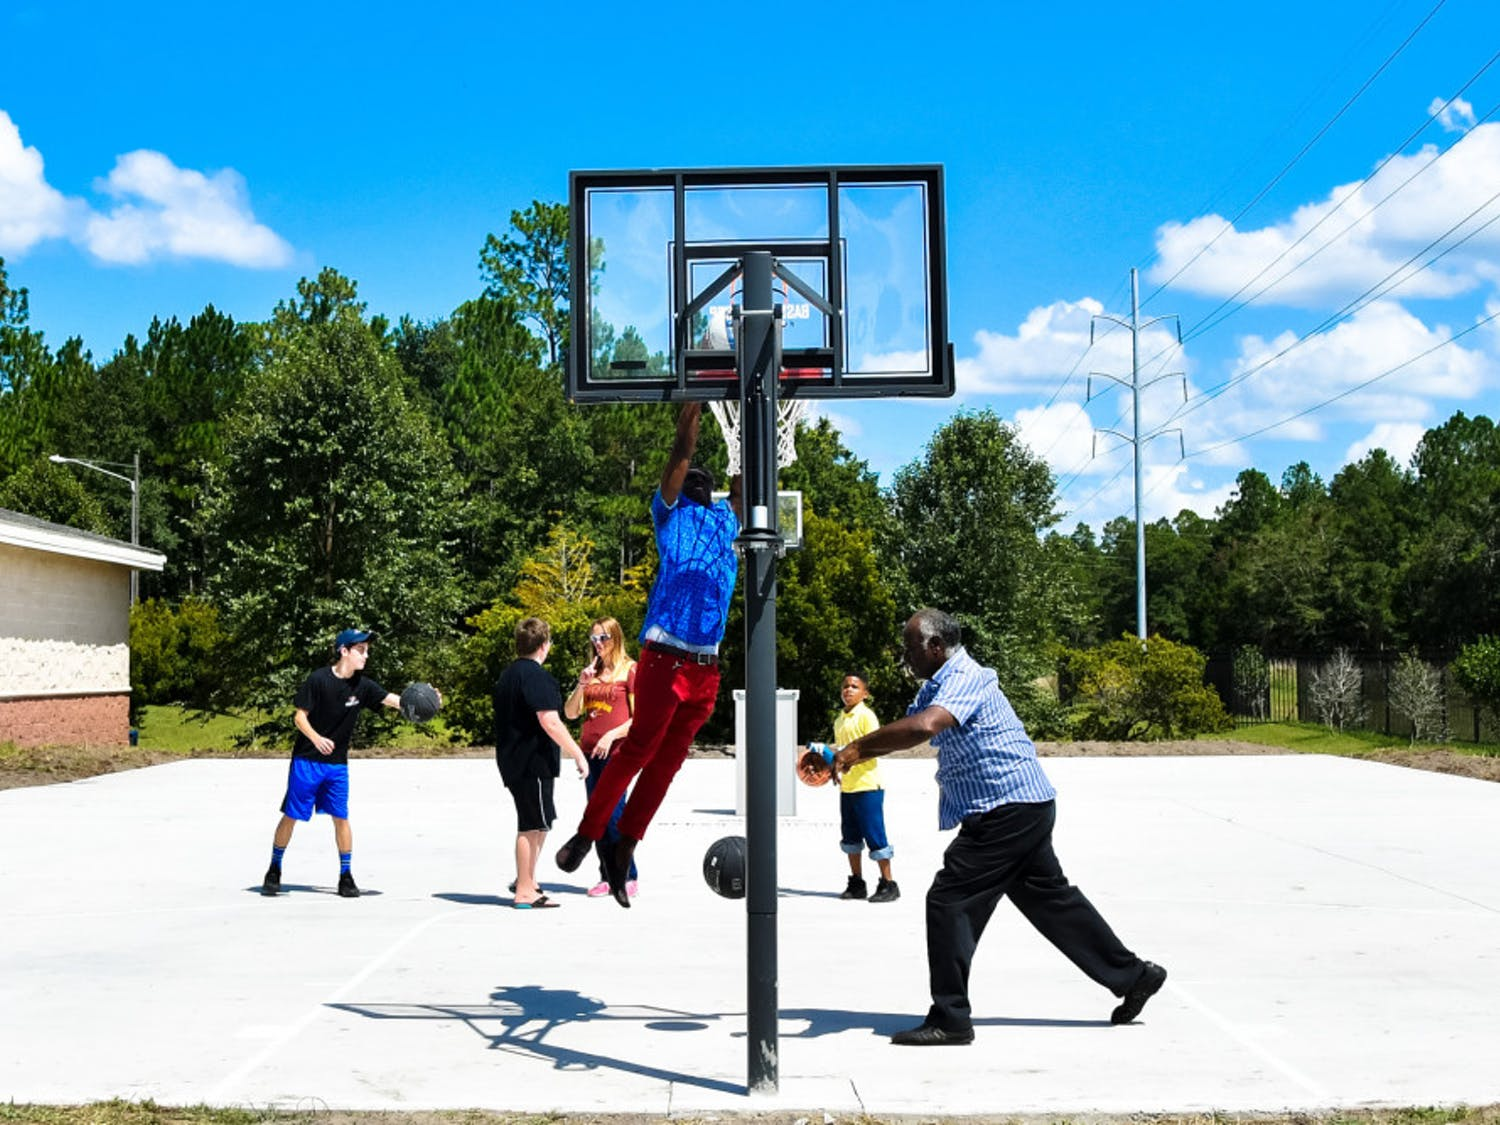 The court located at theUpper Room of Greater Gainesville church was also built as part of theBasketball Cop Foundation inAugust 2016.